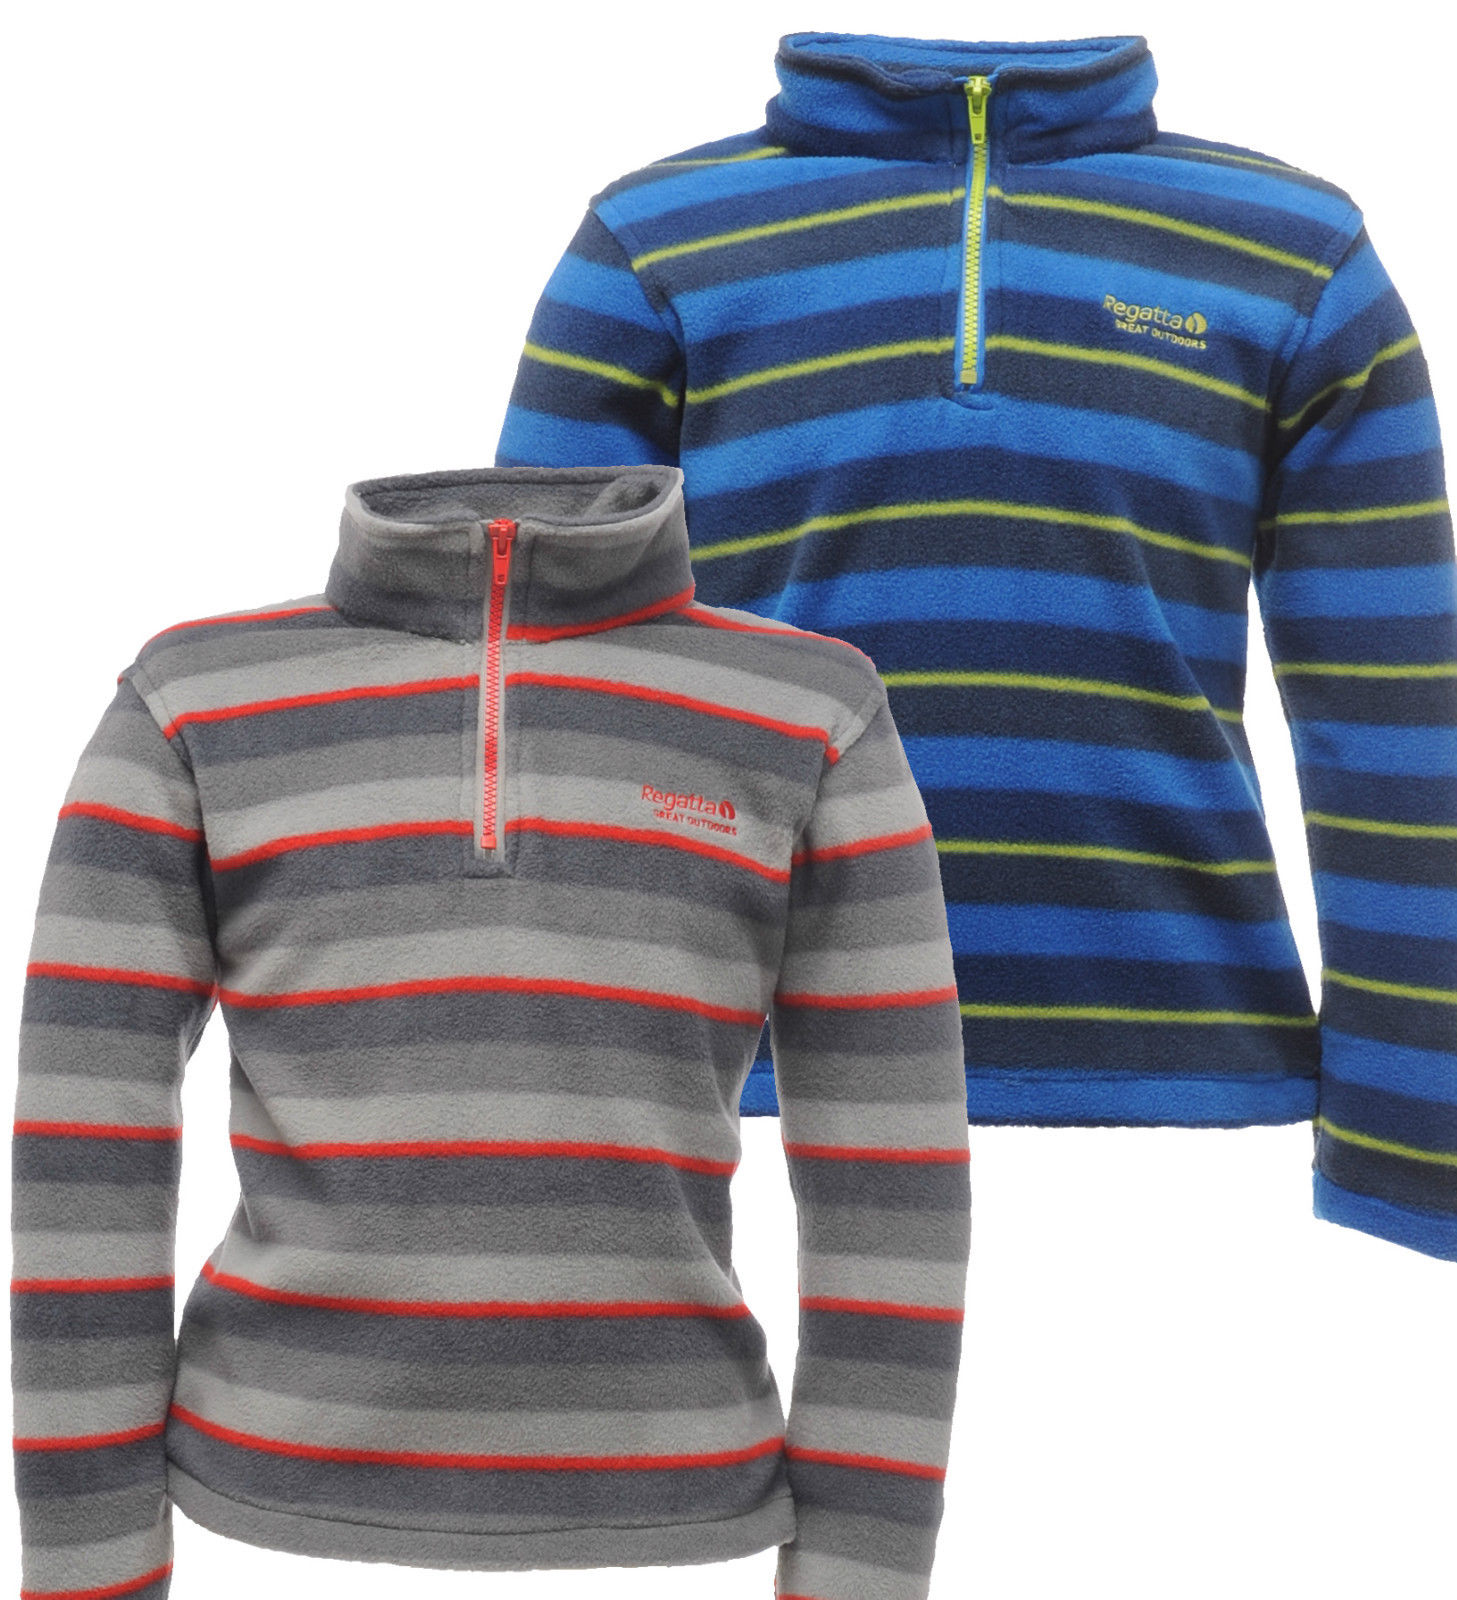 boys jumpers age 7-8 jumpers DGUFQAJ